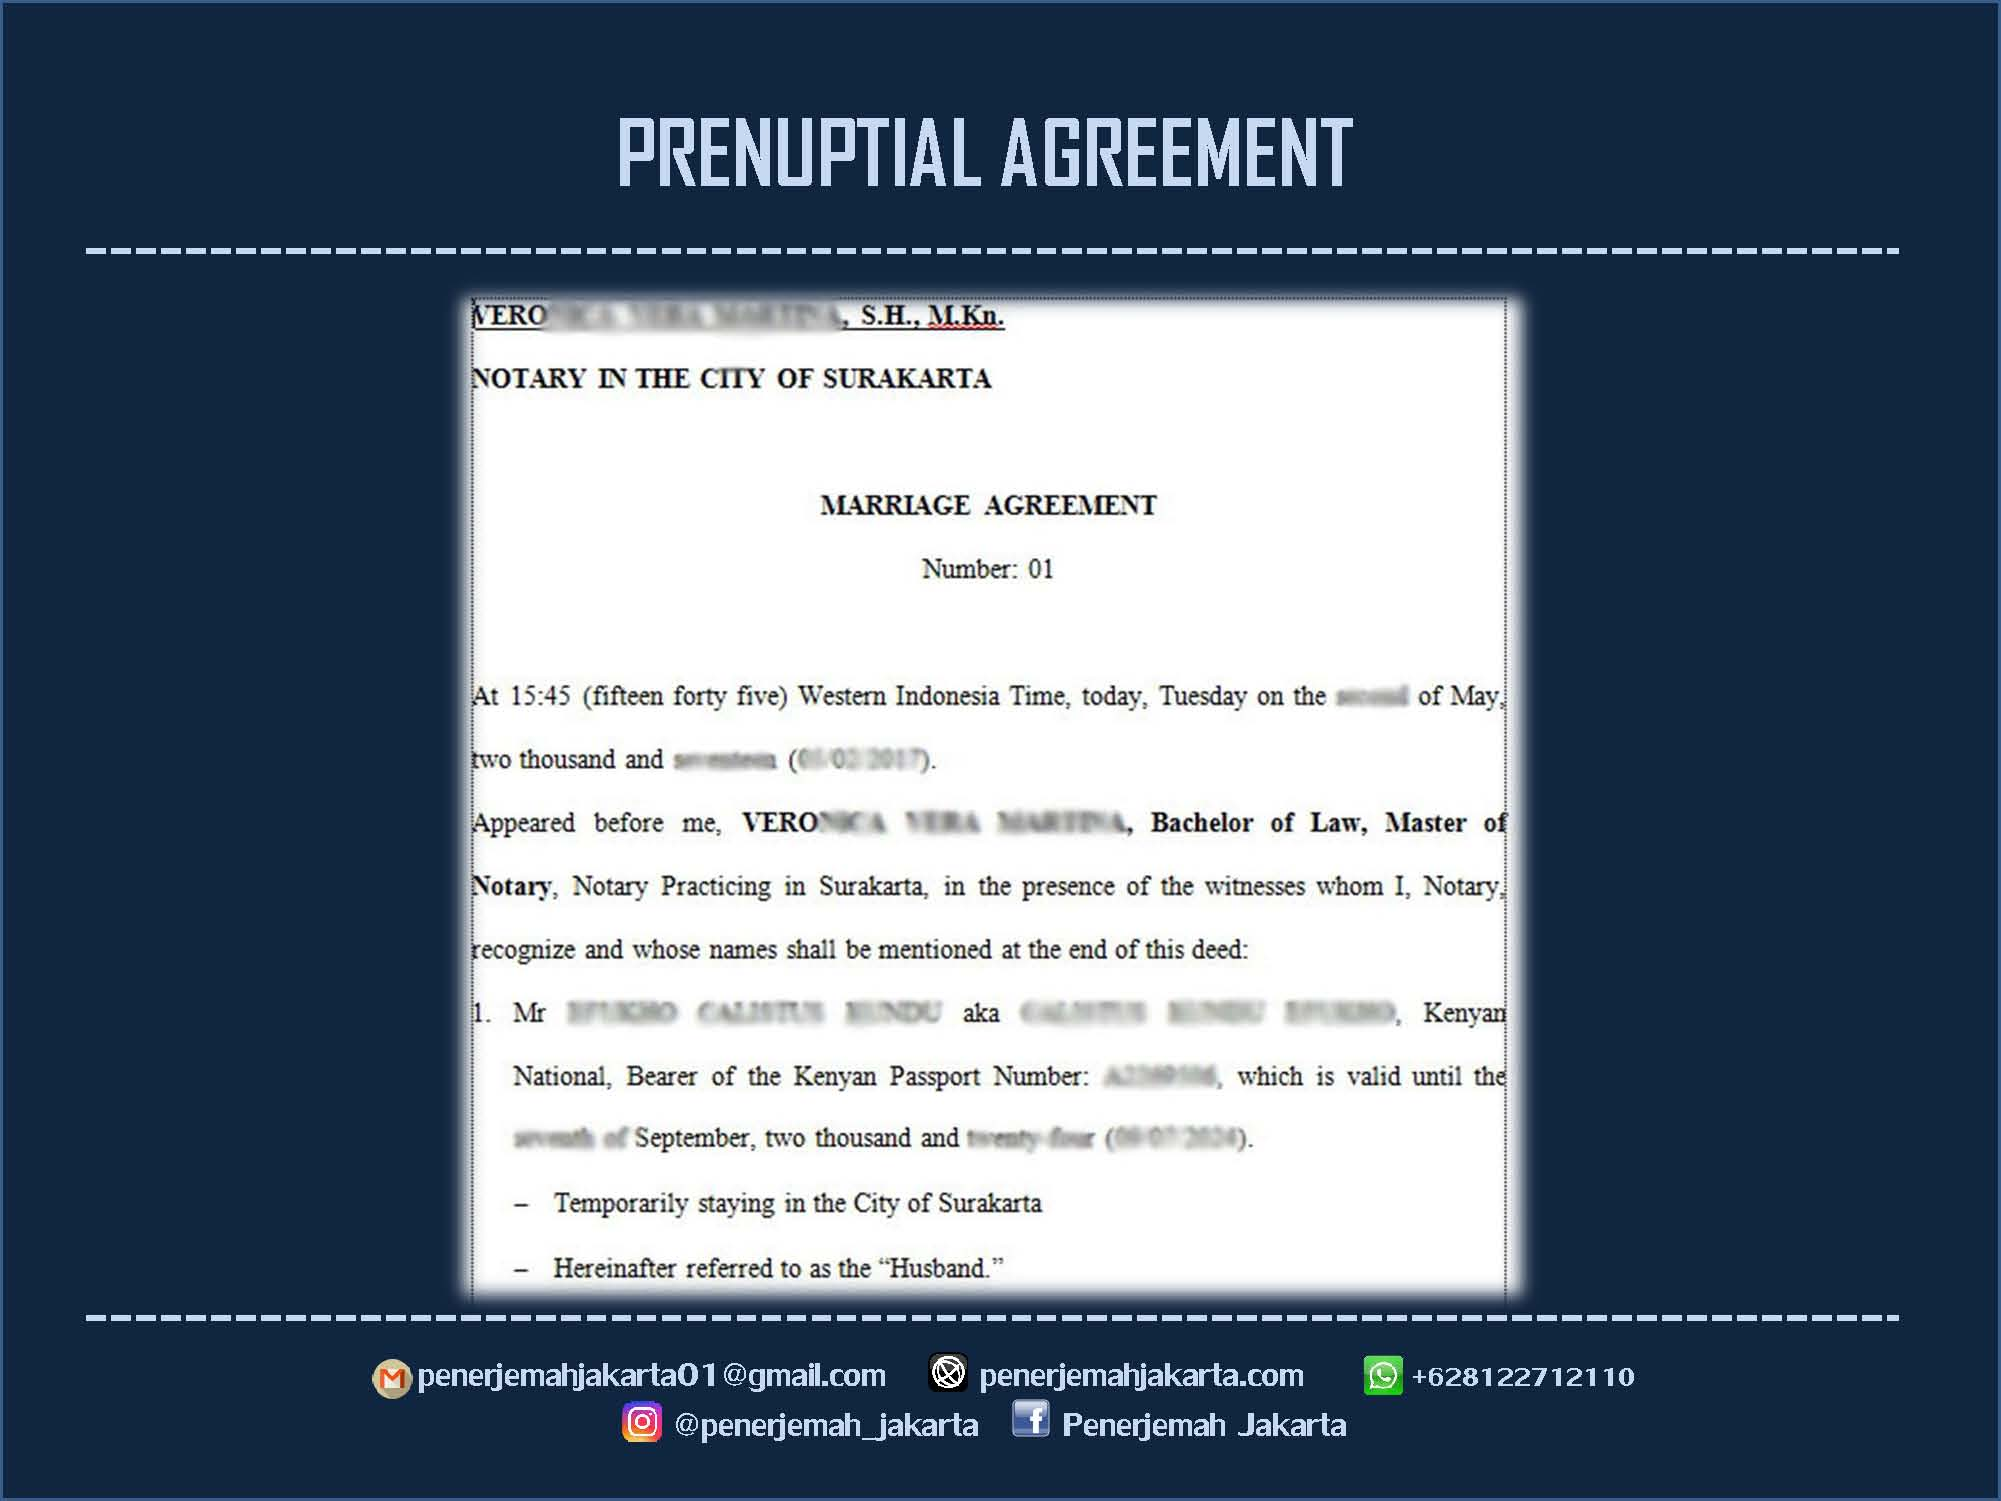 PRENUPTIAL AGREEMENT (PRENUP)